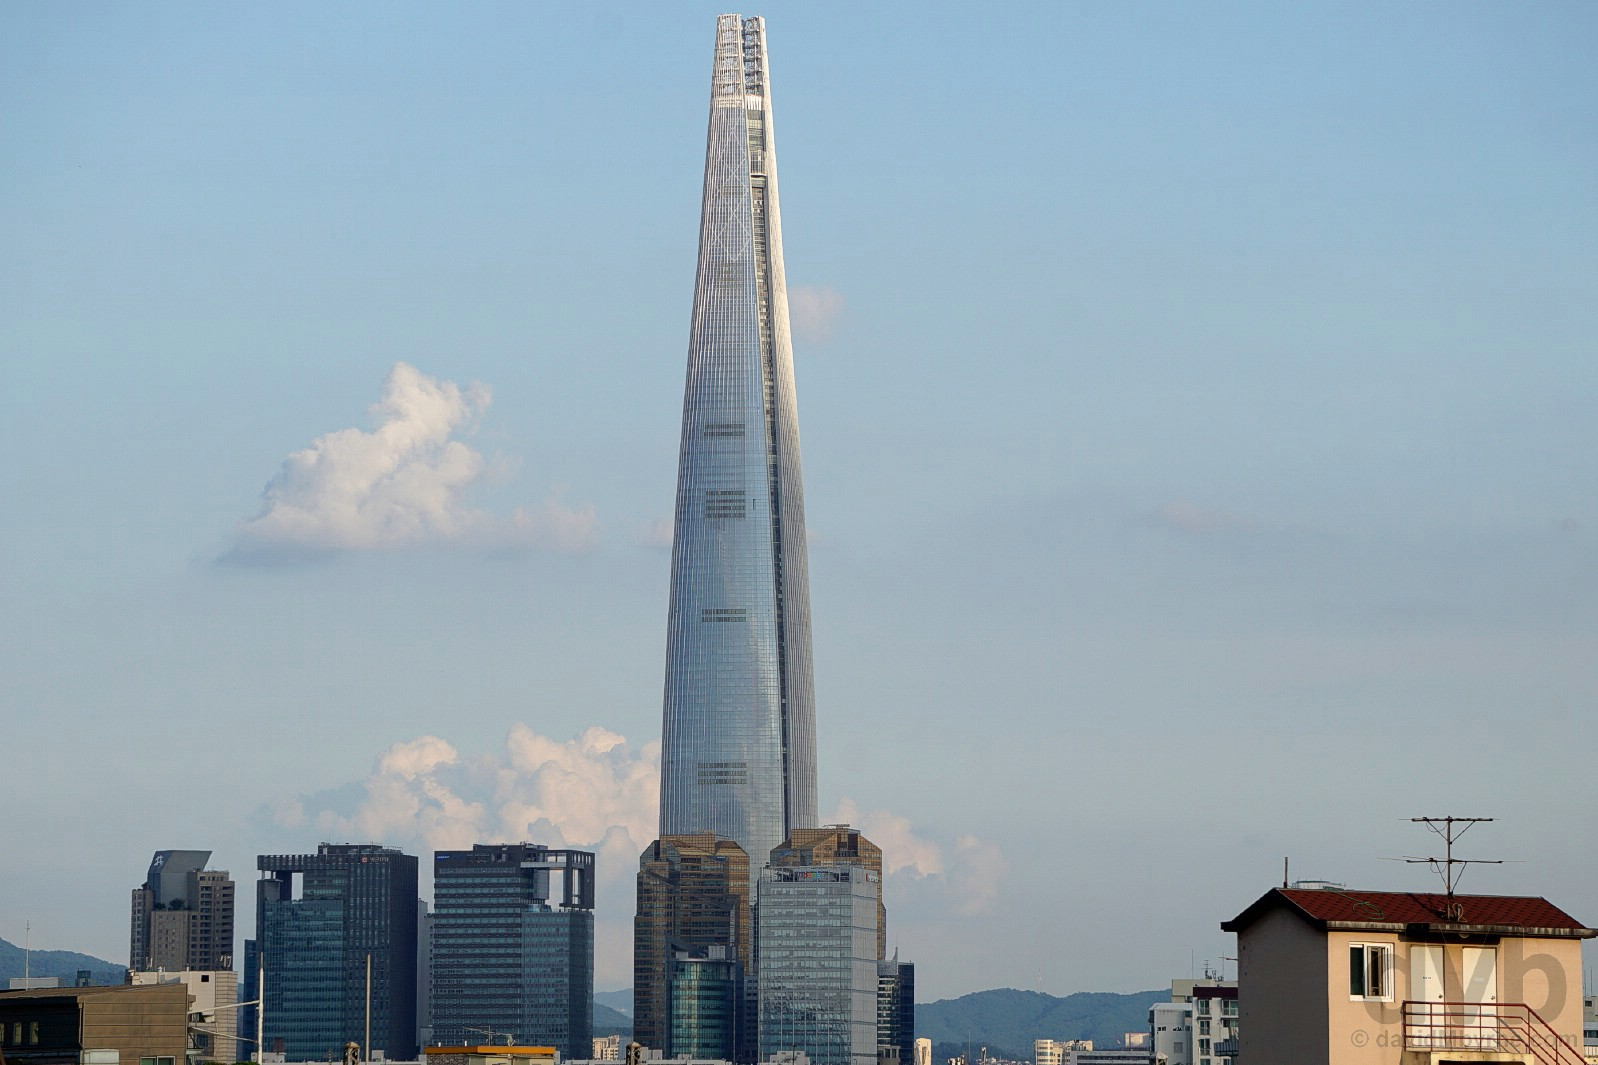 Lotte World Tower in Jamsil, Seoul, South Korea. July 25, 2017.